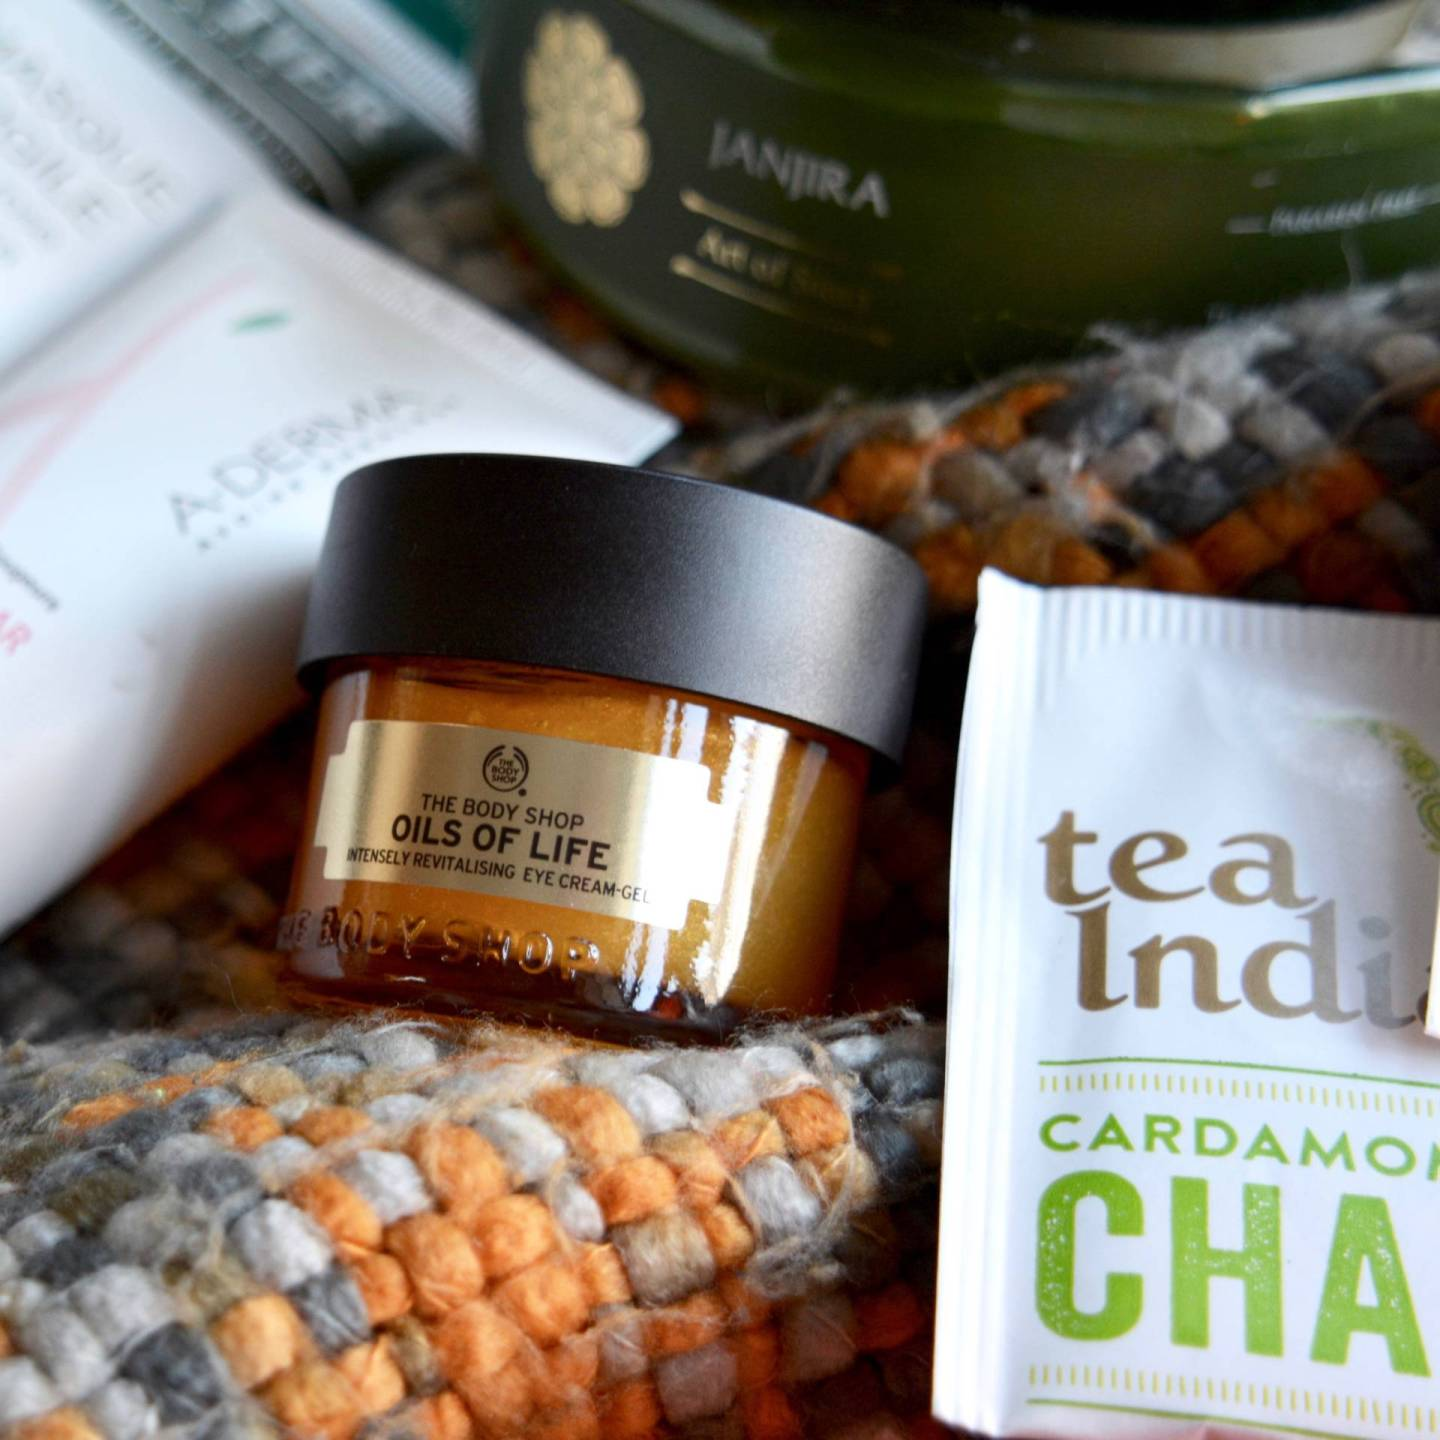 Winter pamper - I had never tried an eye mask in this form, but I'm in love with the Body Shop's Oils Of Life Intensely Revitalising Eye Cream-Gel